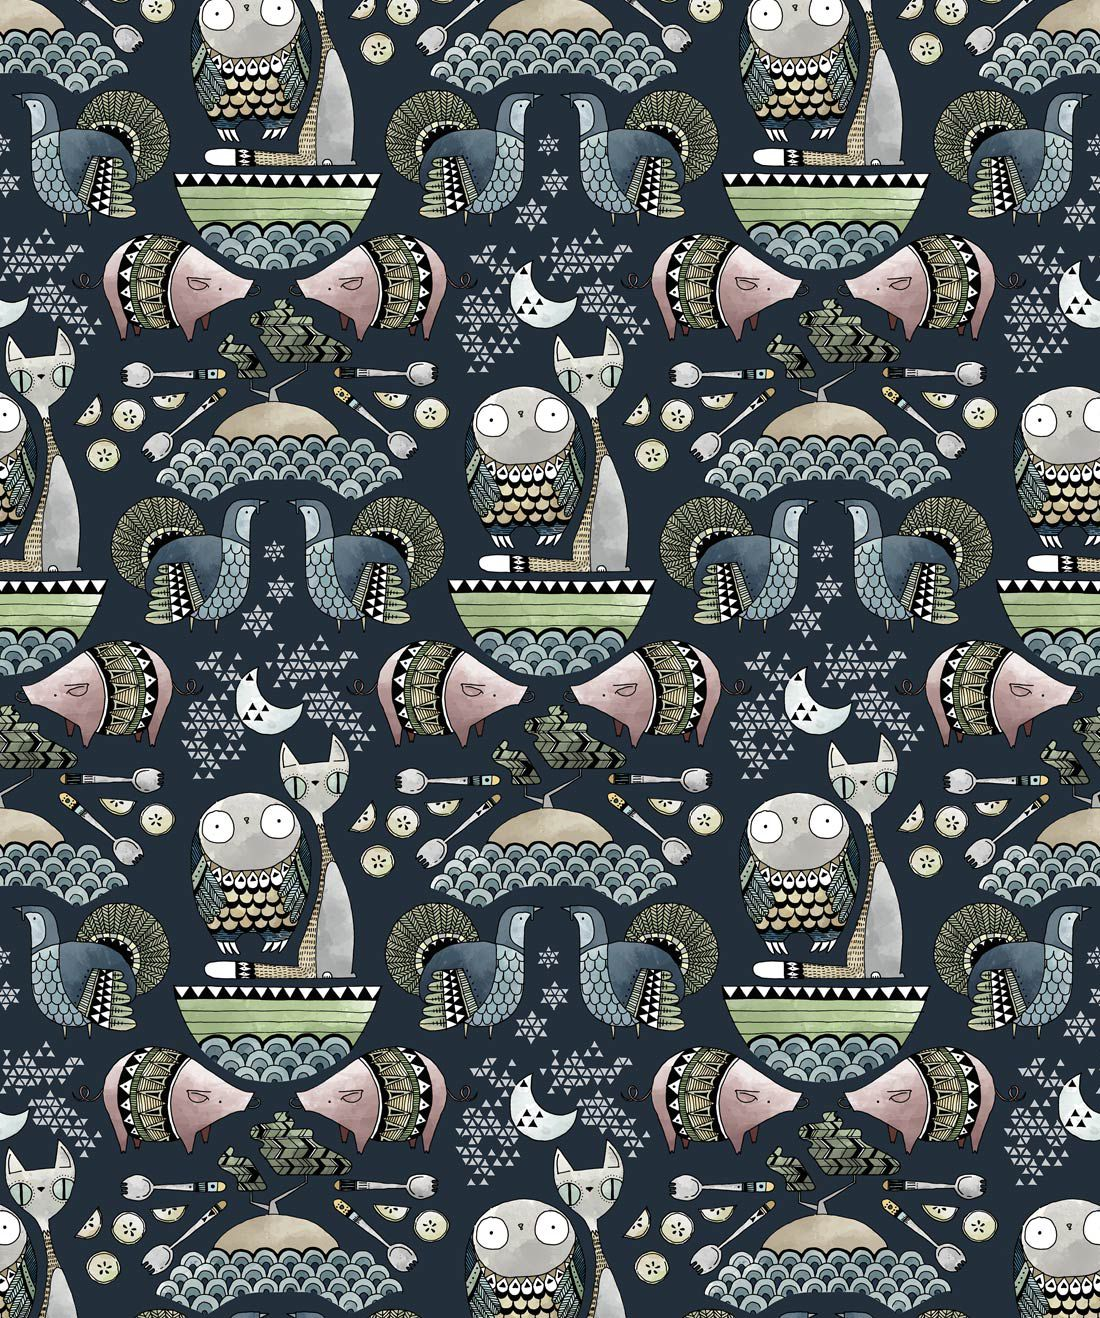 The Owl & The Pussycat Wallpaper